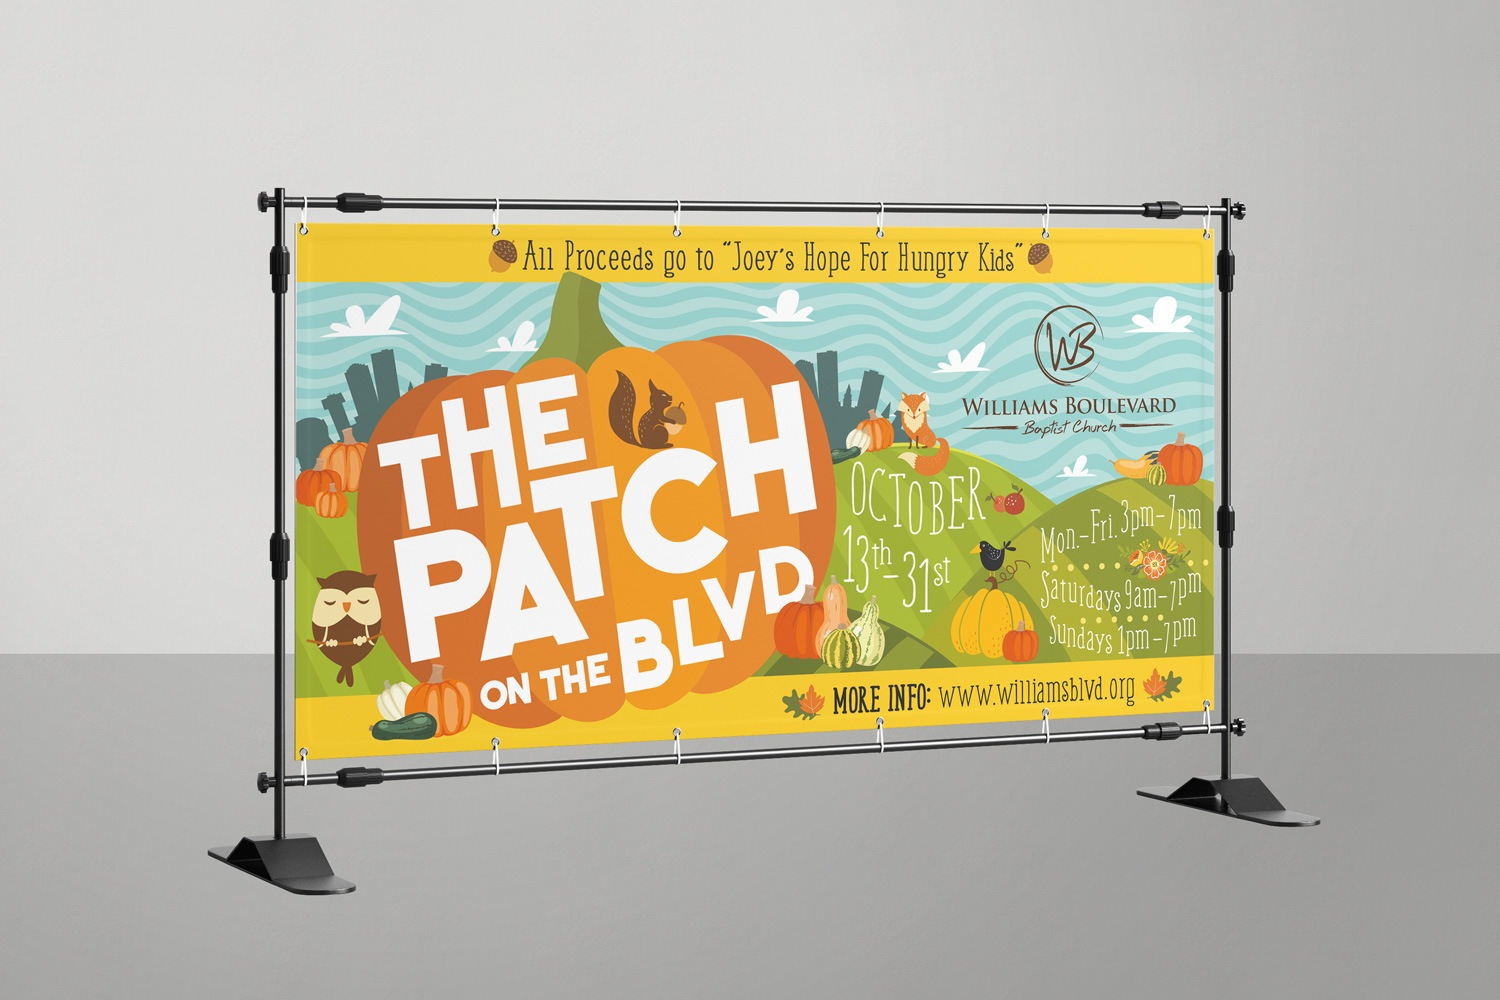 church vinyl banners with graphics for outreach event ideas